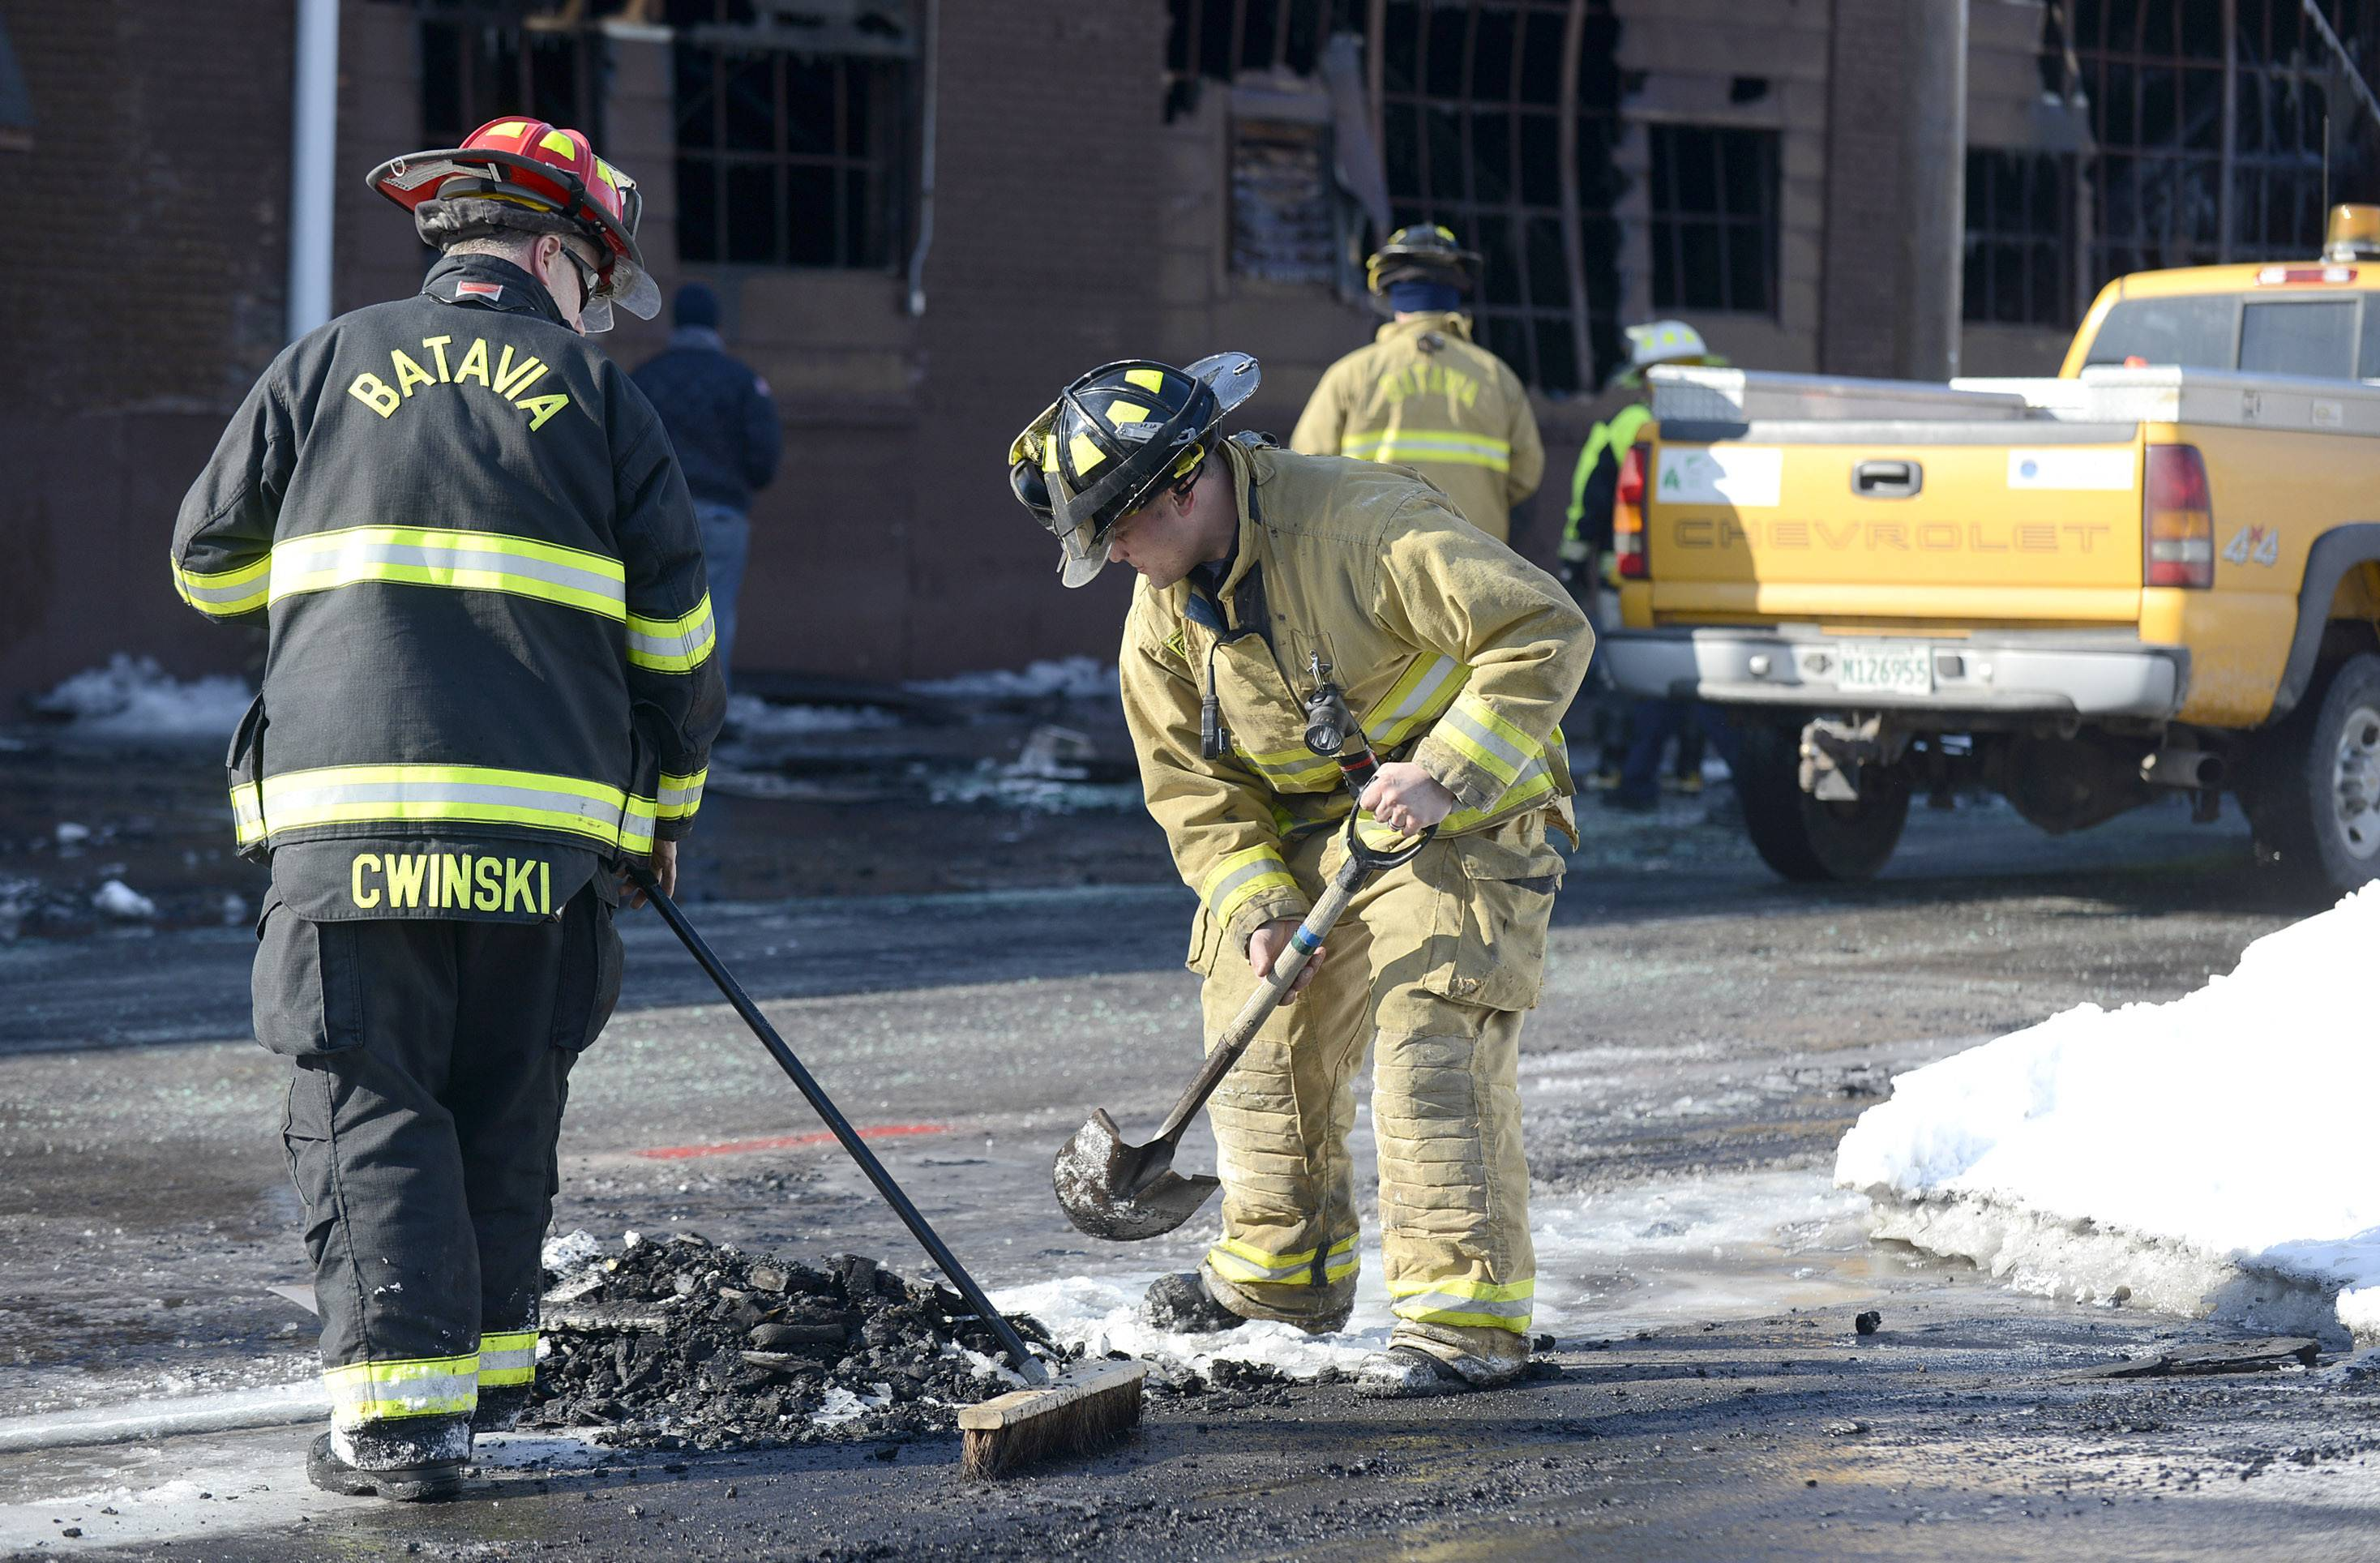 Batavia Fire Lt. Mark Cwinski and firefighter/paramedic Kit Miner clean up burned debris in front of Master Cast Thursday morning, as one engine from the department was still on hand from the fire the night before. Both firefighters worked at the site through the night.